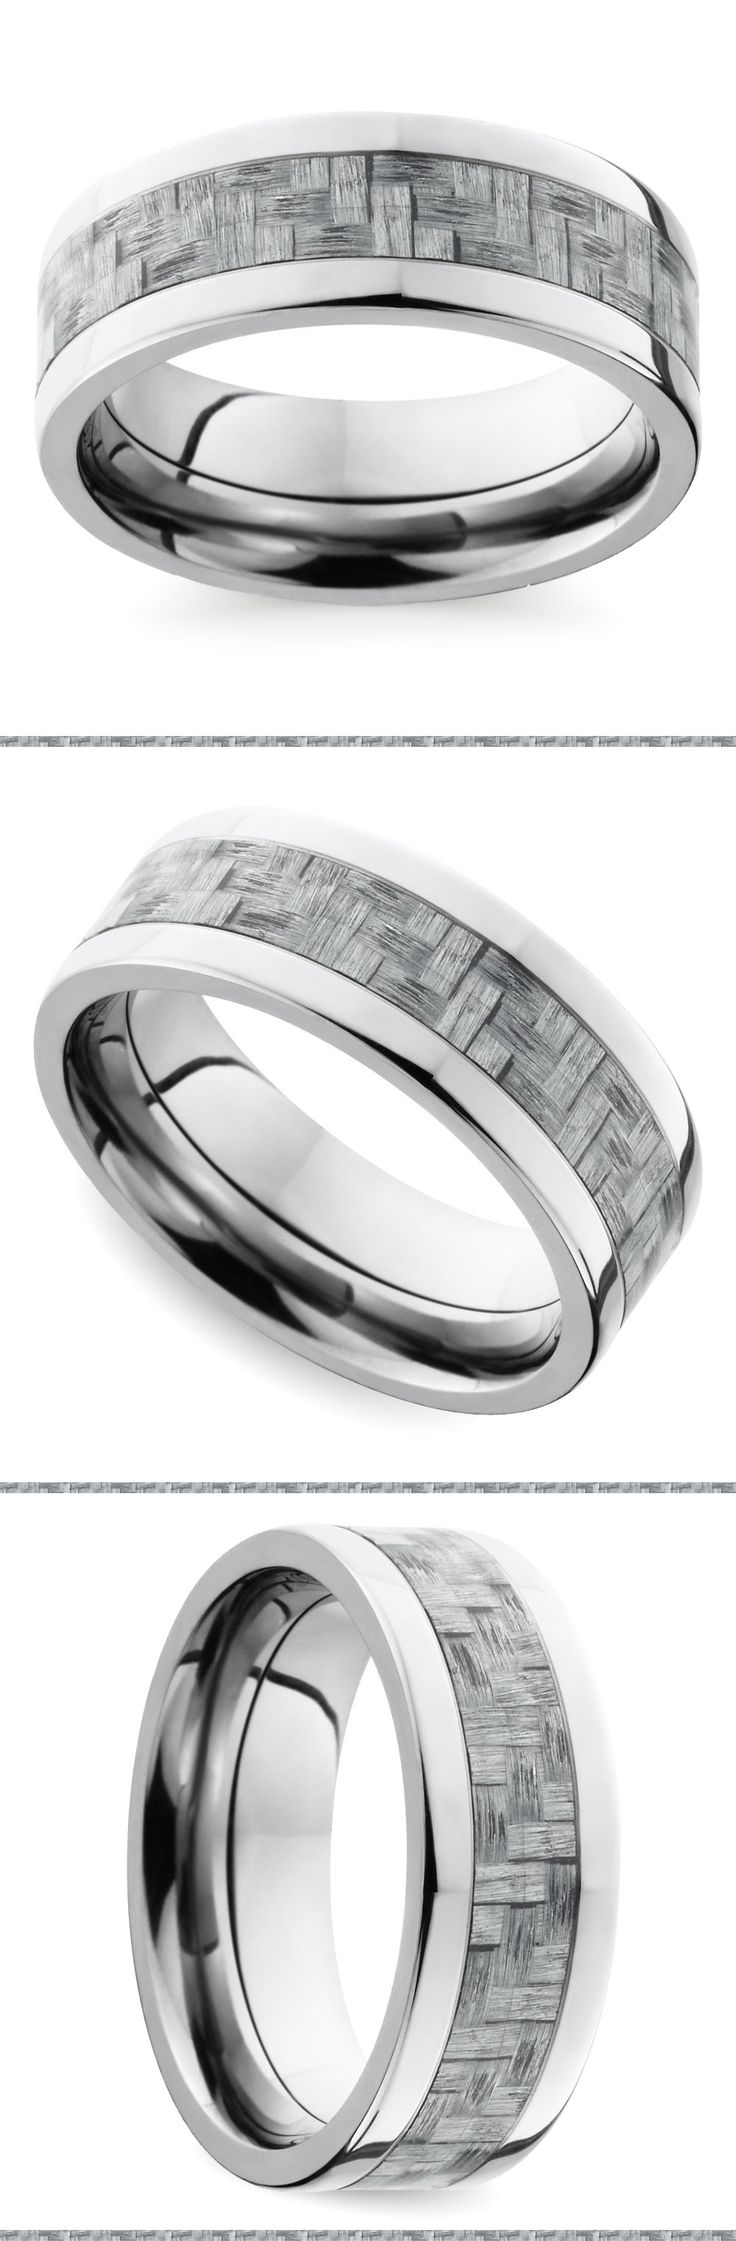 17 Best Images About Carbon Fiber Mens Wedding Rings On Pinterest